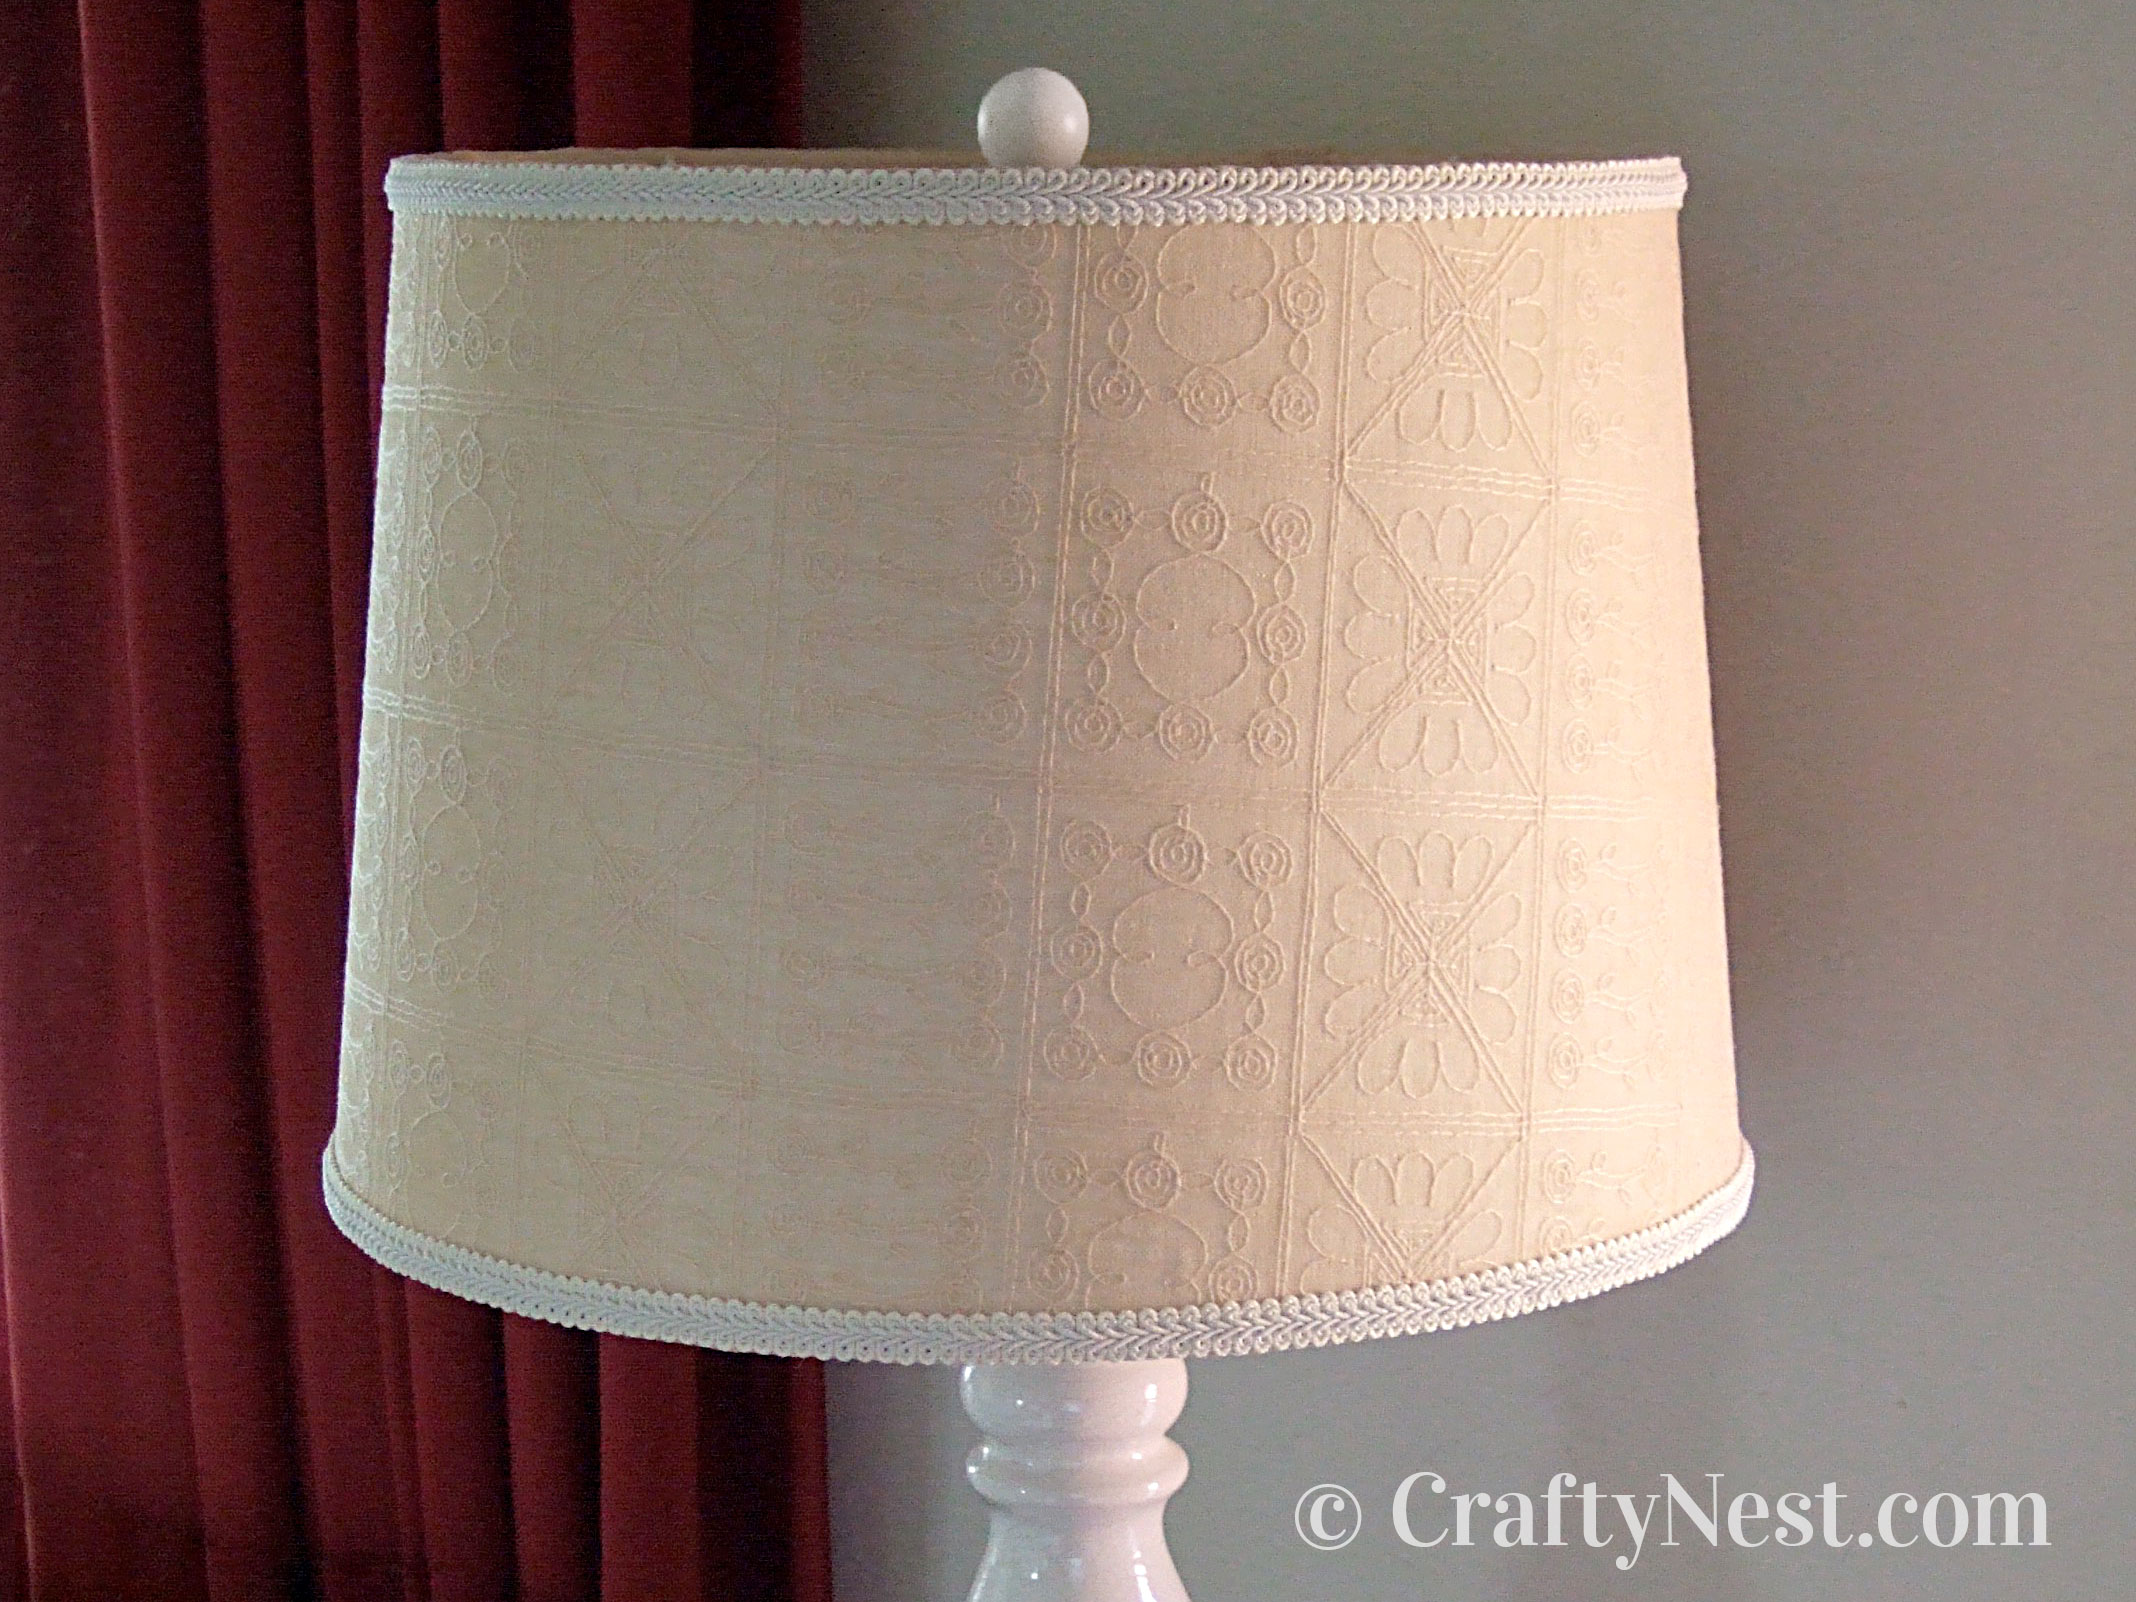 Fabric-covered lampshade on a lamp with a round white finial, photo